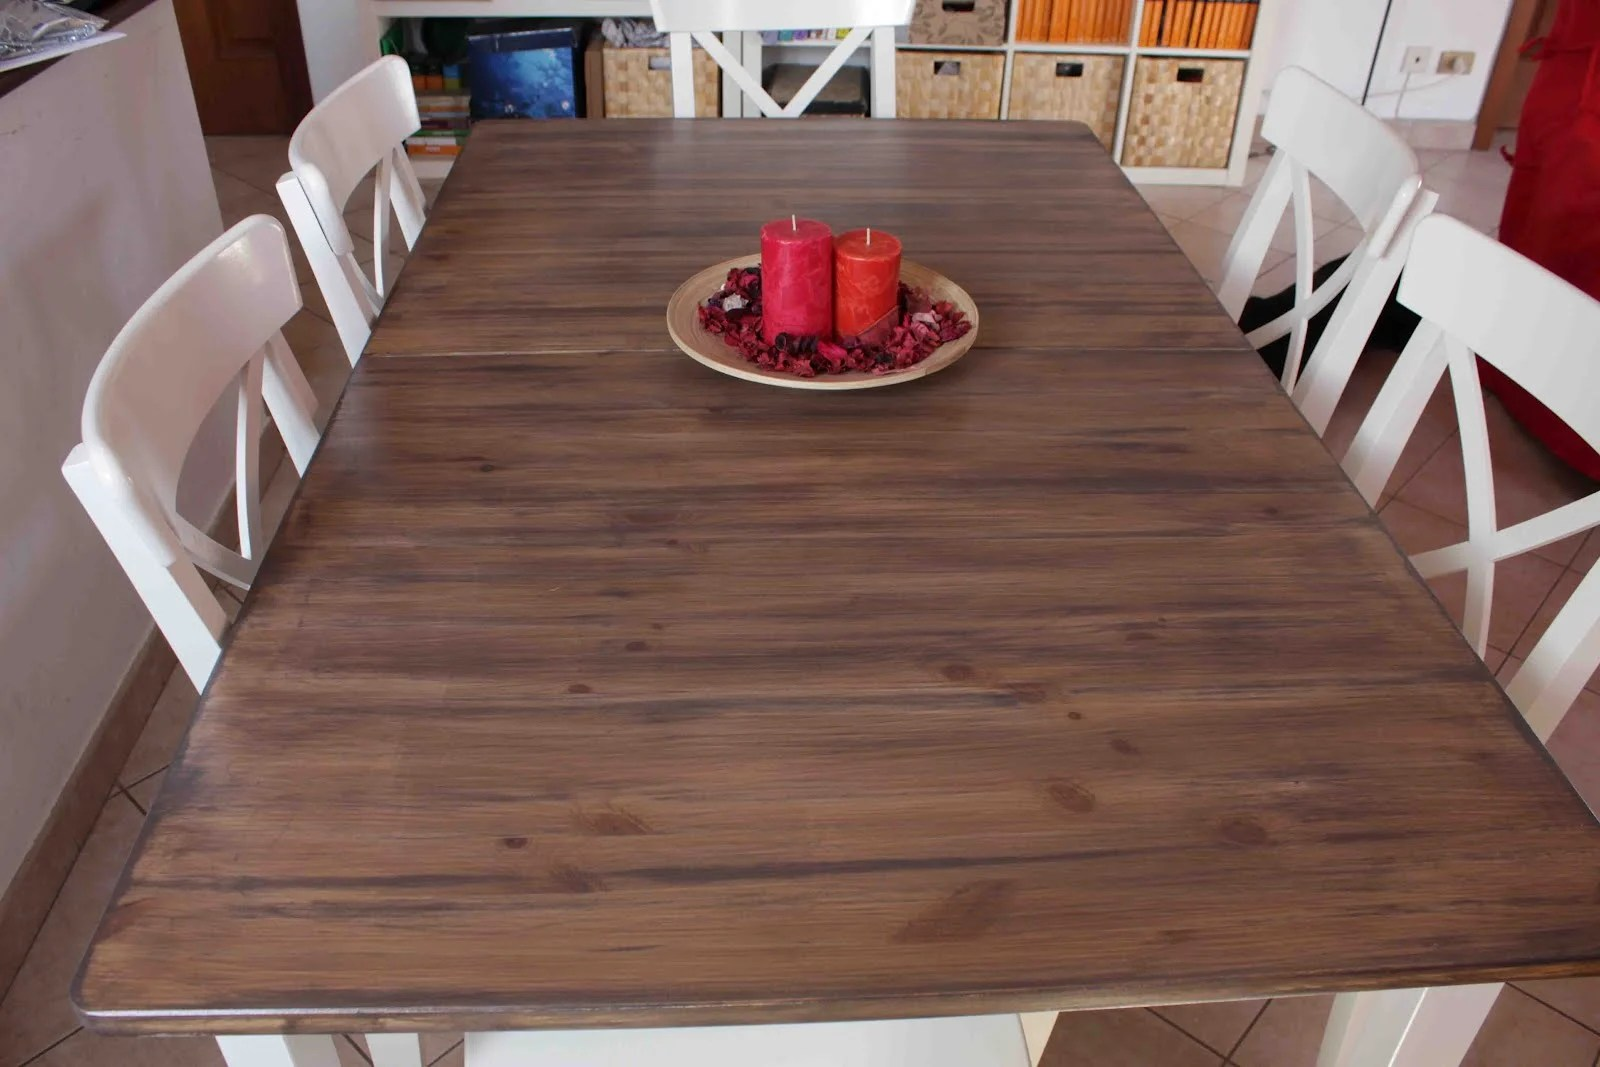 hack a country kitchen style dining table refinish kitchen table Hack a country kitchen style dining table